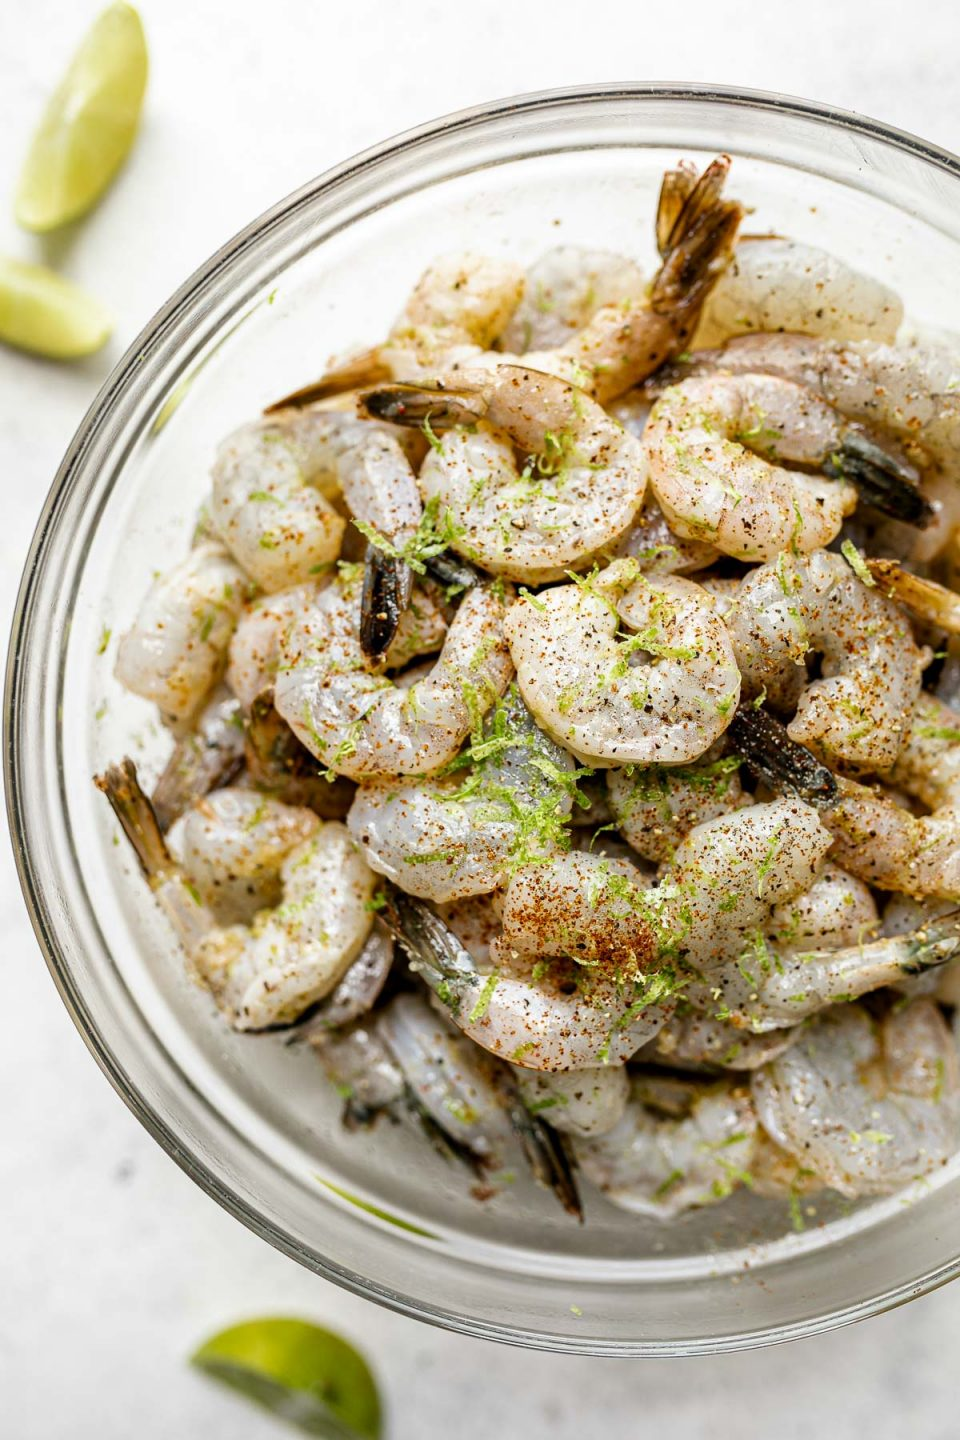 A close up of raw jumbo shrimp in a large glass mixing bowl, marinating in a zesty garlic & lime marinade. The bowl sits atop a gray & white textured surface and is surrounded by lime wedges..